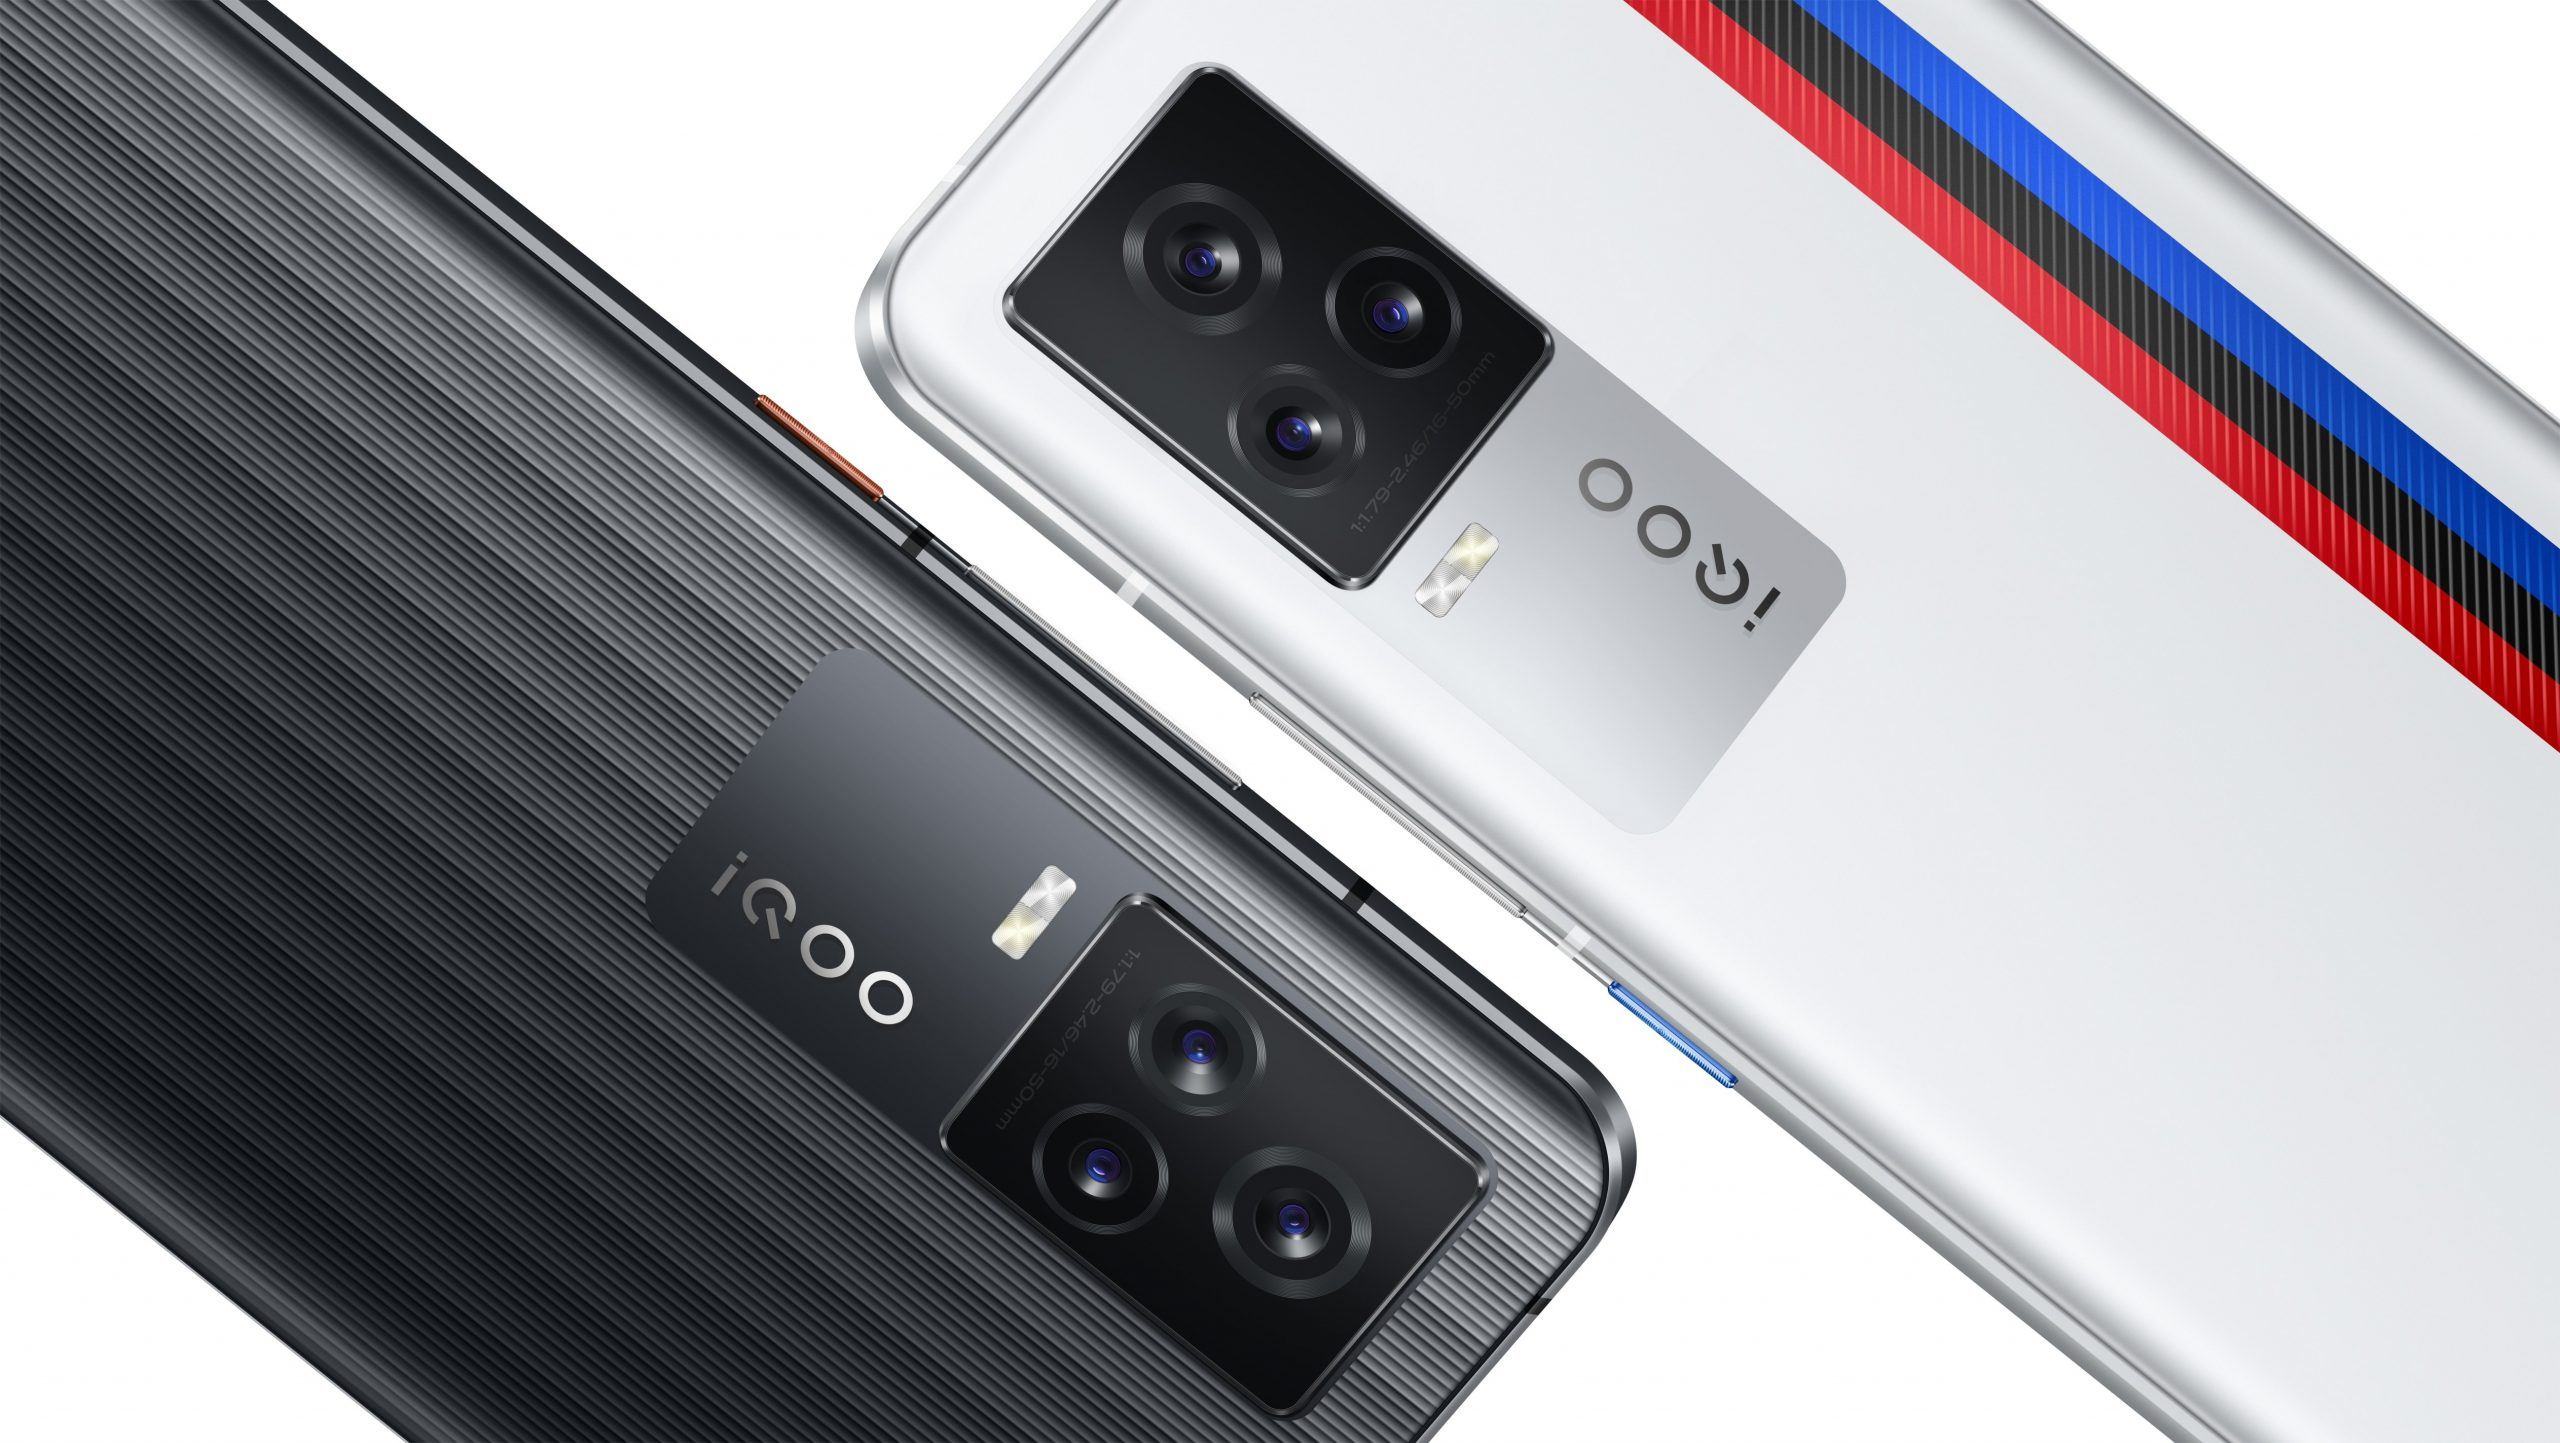 The IQOO 8 will be released in China tomorrow